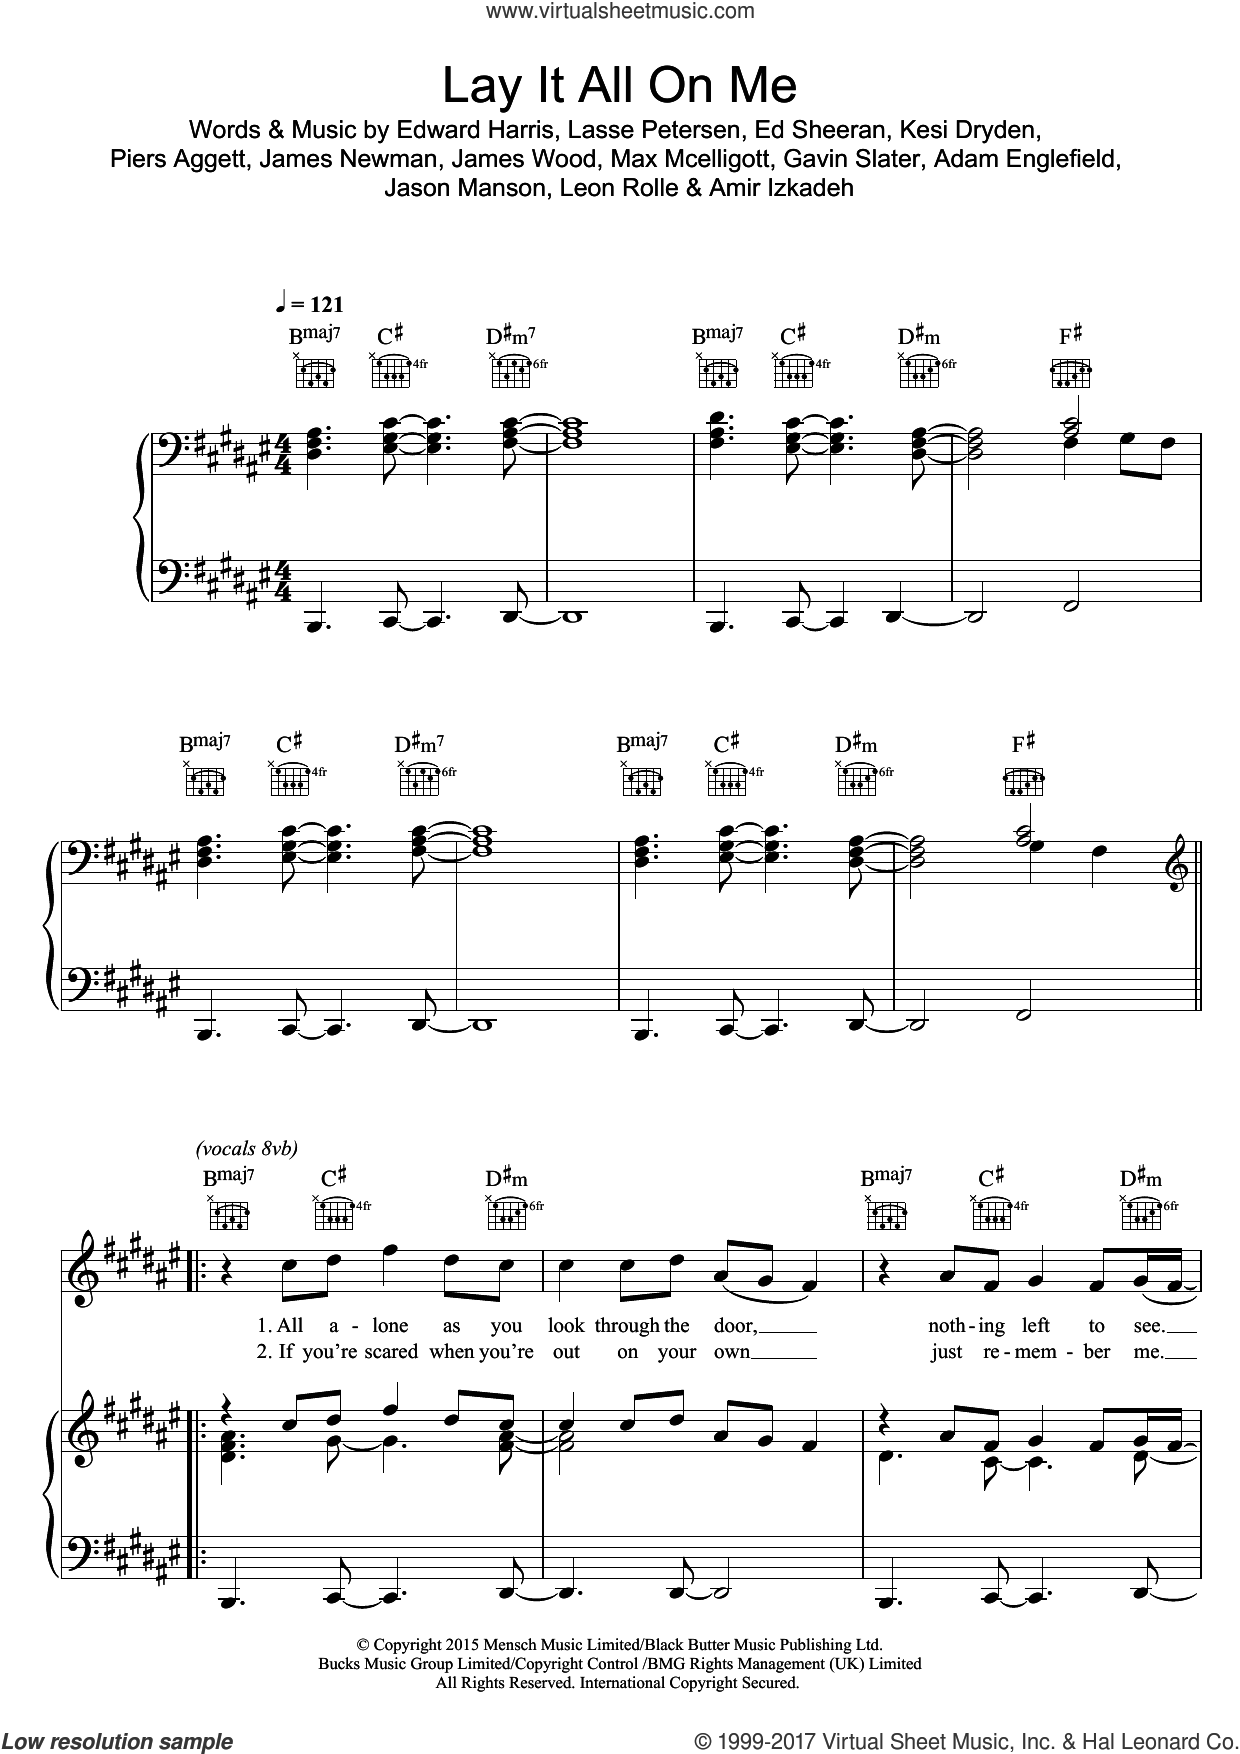 Lay It All On Me (featuring Ed Sheeran) sheet music for voice, piano or guitar by Rudimental, Adam Englefield, Amir Izkadeh, Ed Sheeran, Eddie Harris, Gavin Slater, James Newman, James Wood, Jason Manson, Kesi Dryden, Lasse Petersen, Leon Rolle, Max McElligott and Piers Aggett, intermediate. Score Image Preview.